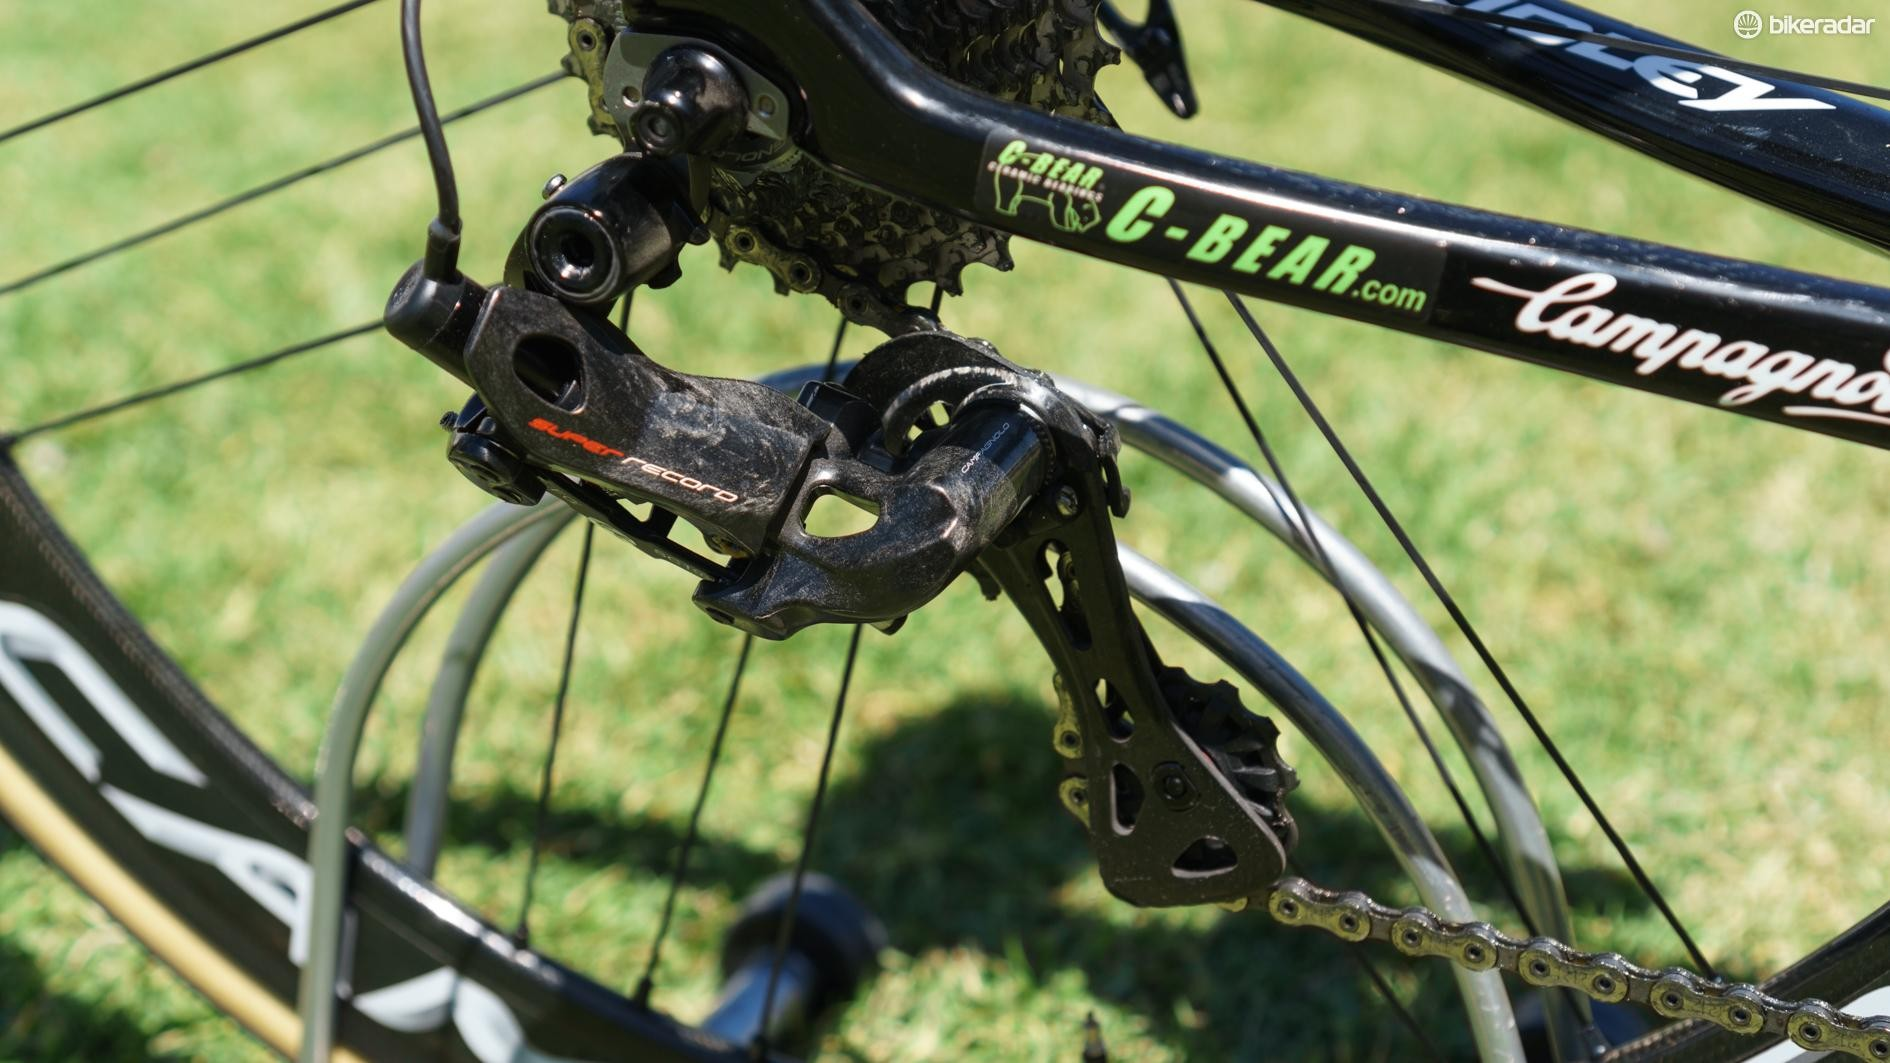 The new derailleur has a slimmer profile compared to the 11-speed version